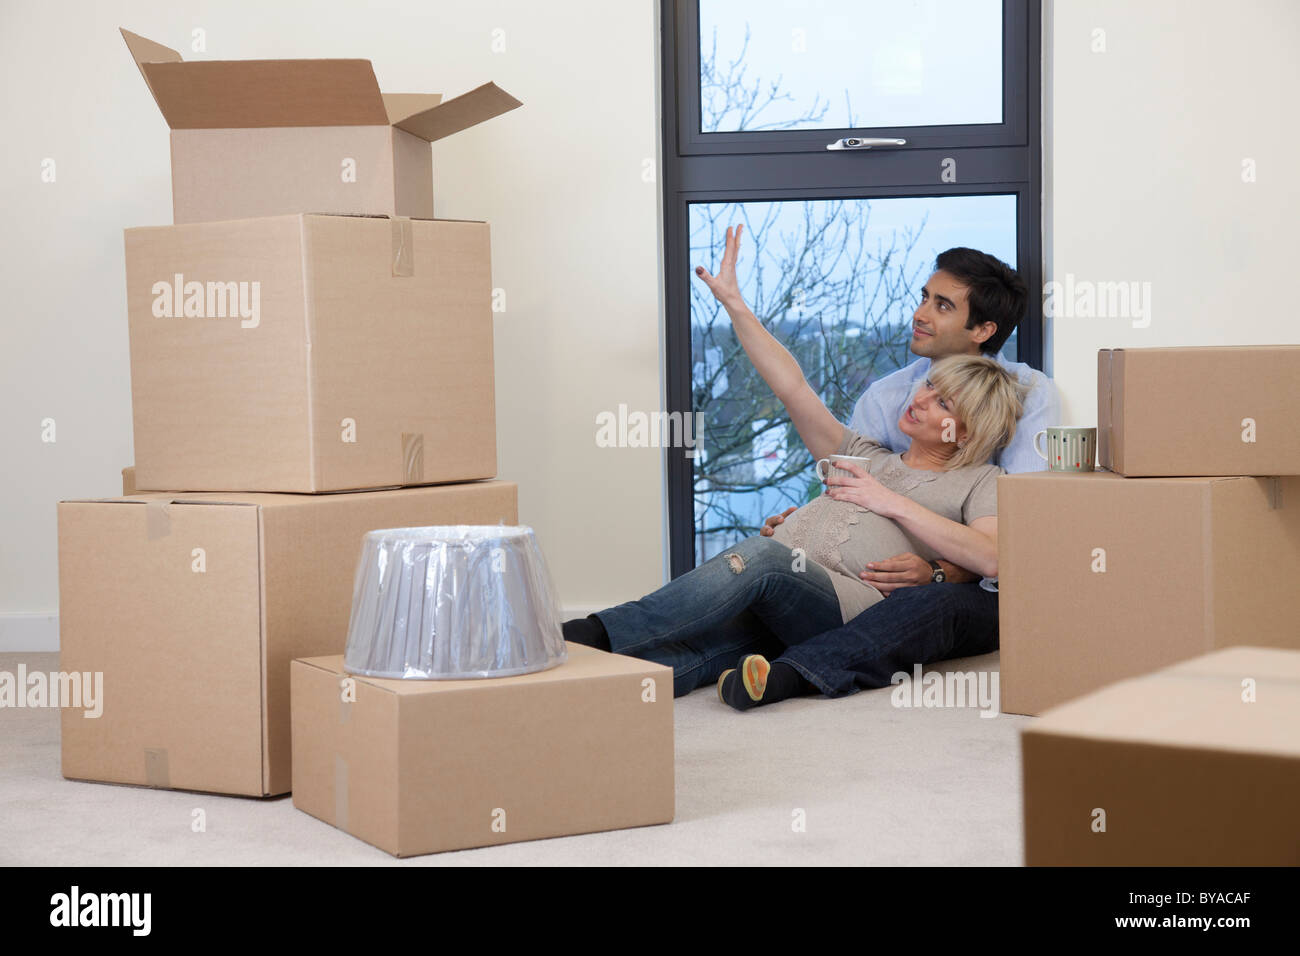 Couple sat amongst boxes in apartment - Stock Image